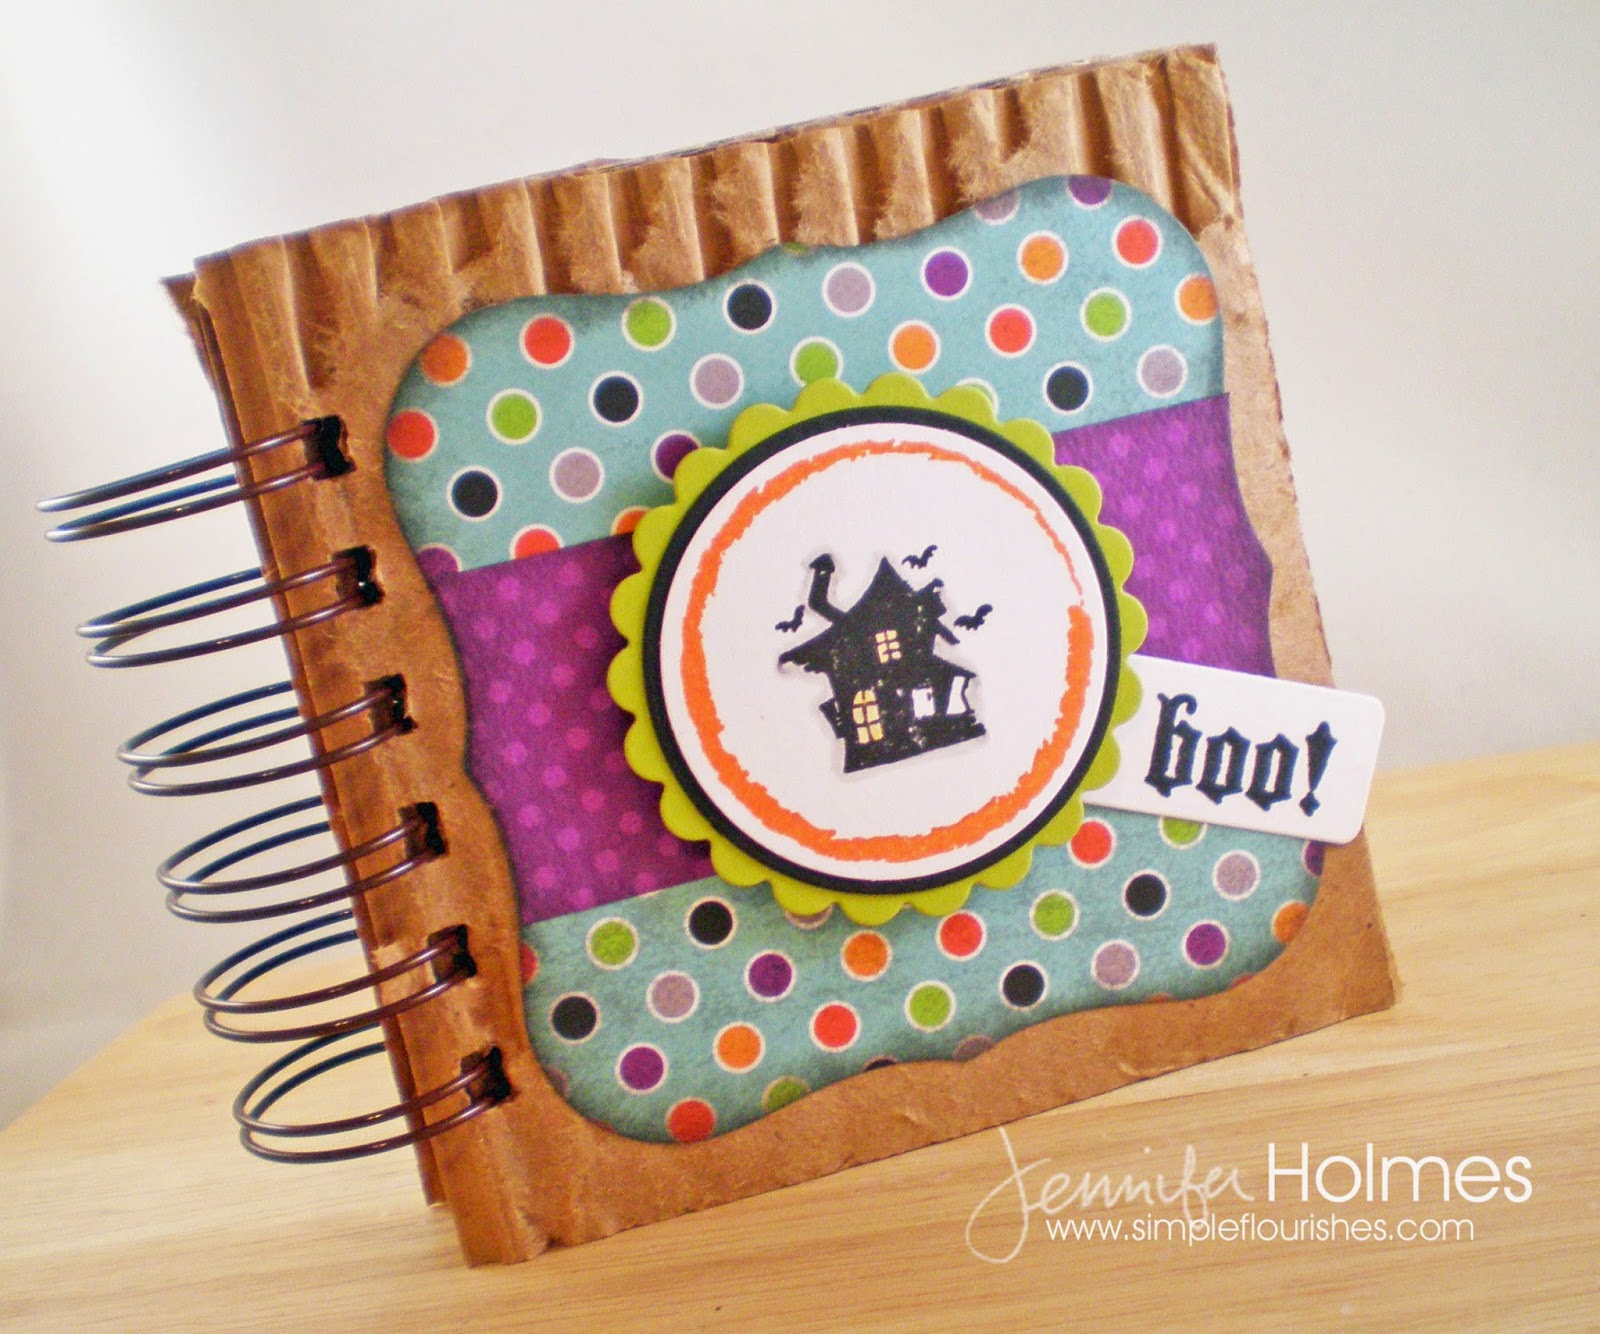 Scrapbook ideas recycled - Jennifer Holmes Created This Mini Scrapbook Album That S Super Cute For Storing Halloween Memories She Used Recycled Box And Cardstock And A Variety Of Die